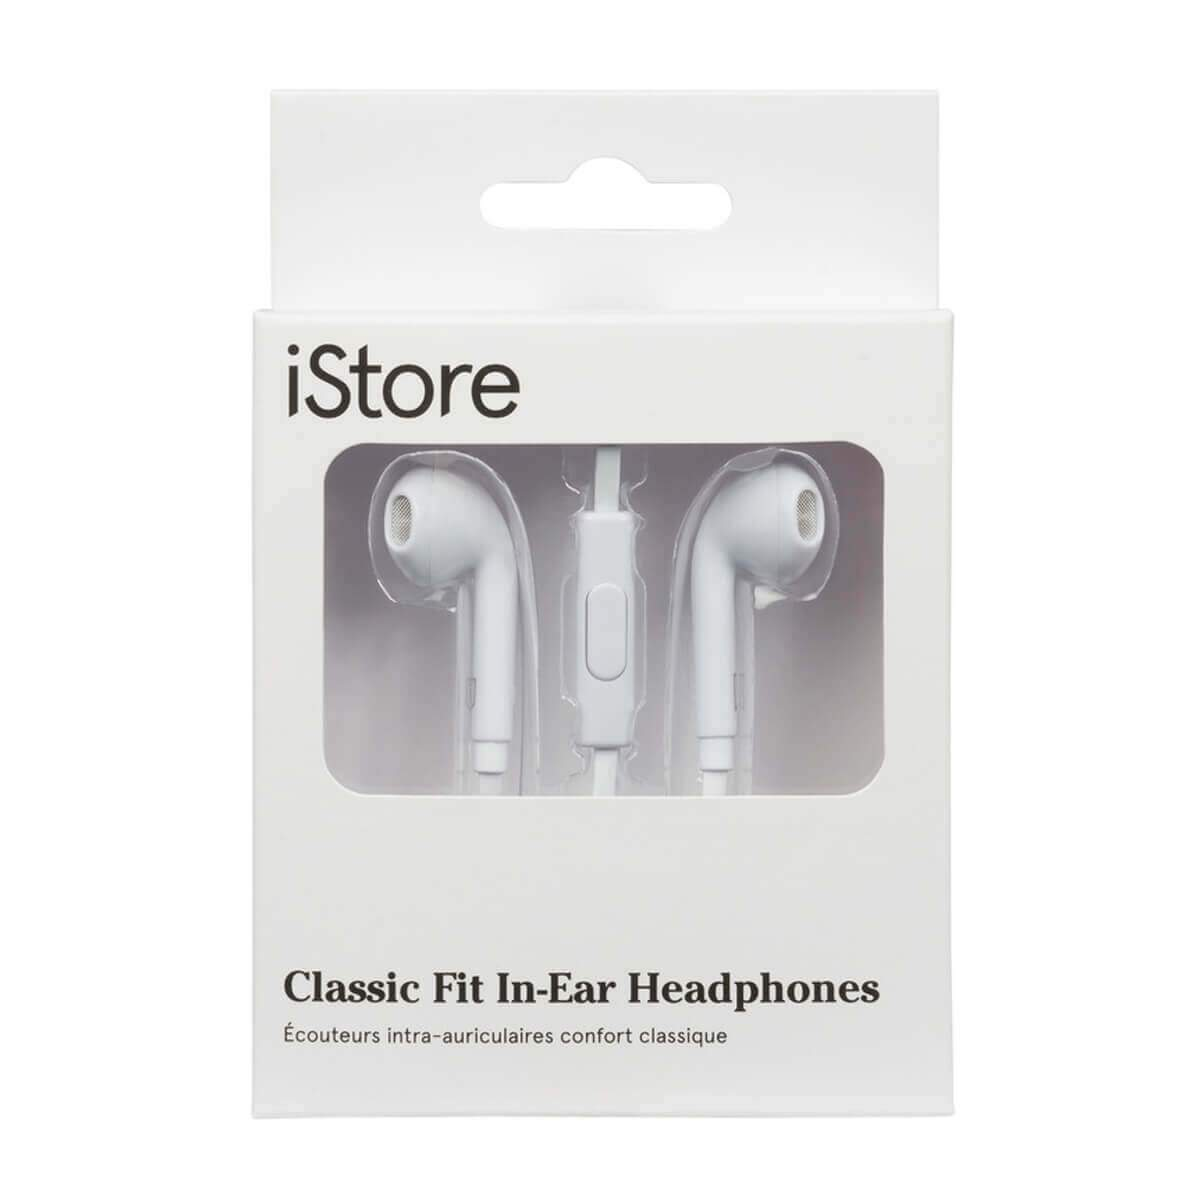 iStore Classic Fit Earbuds (White)